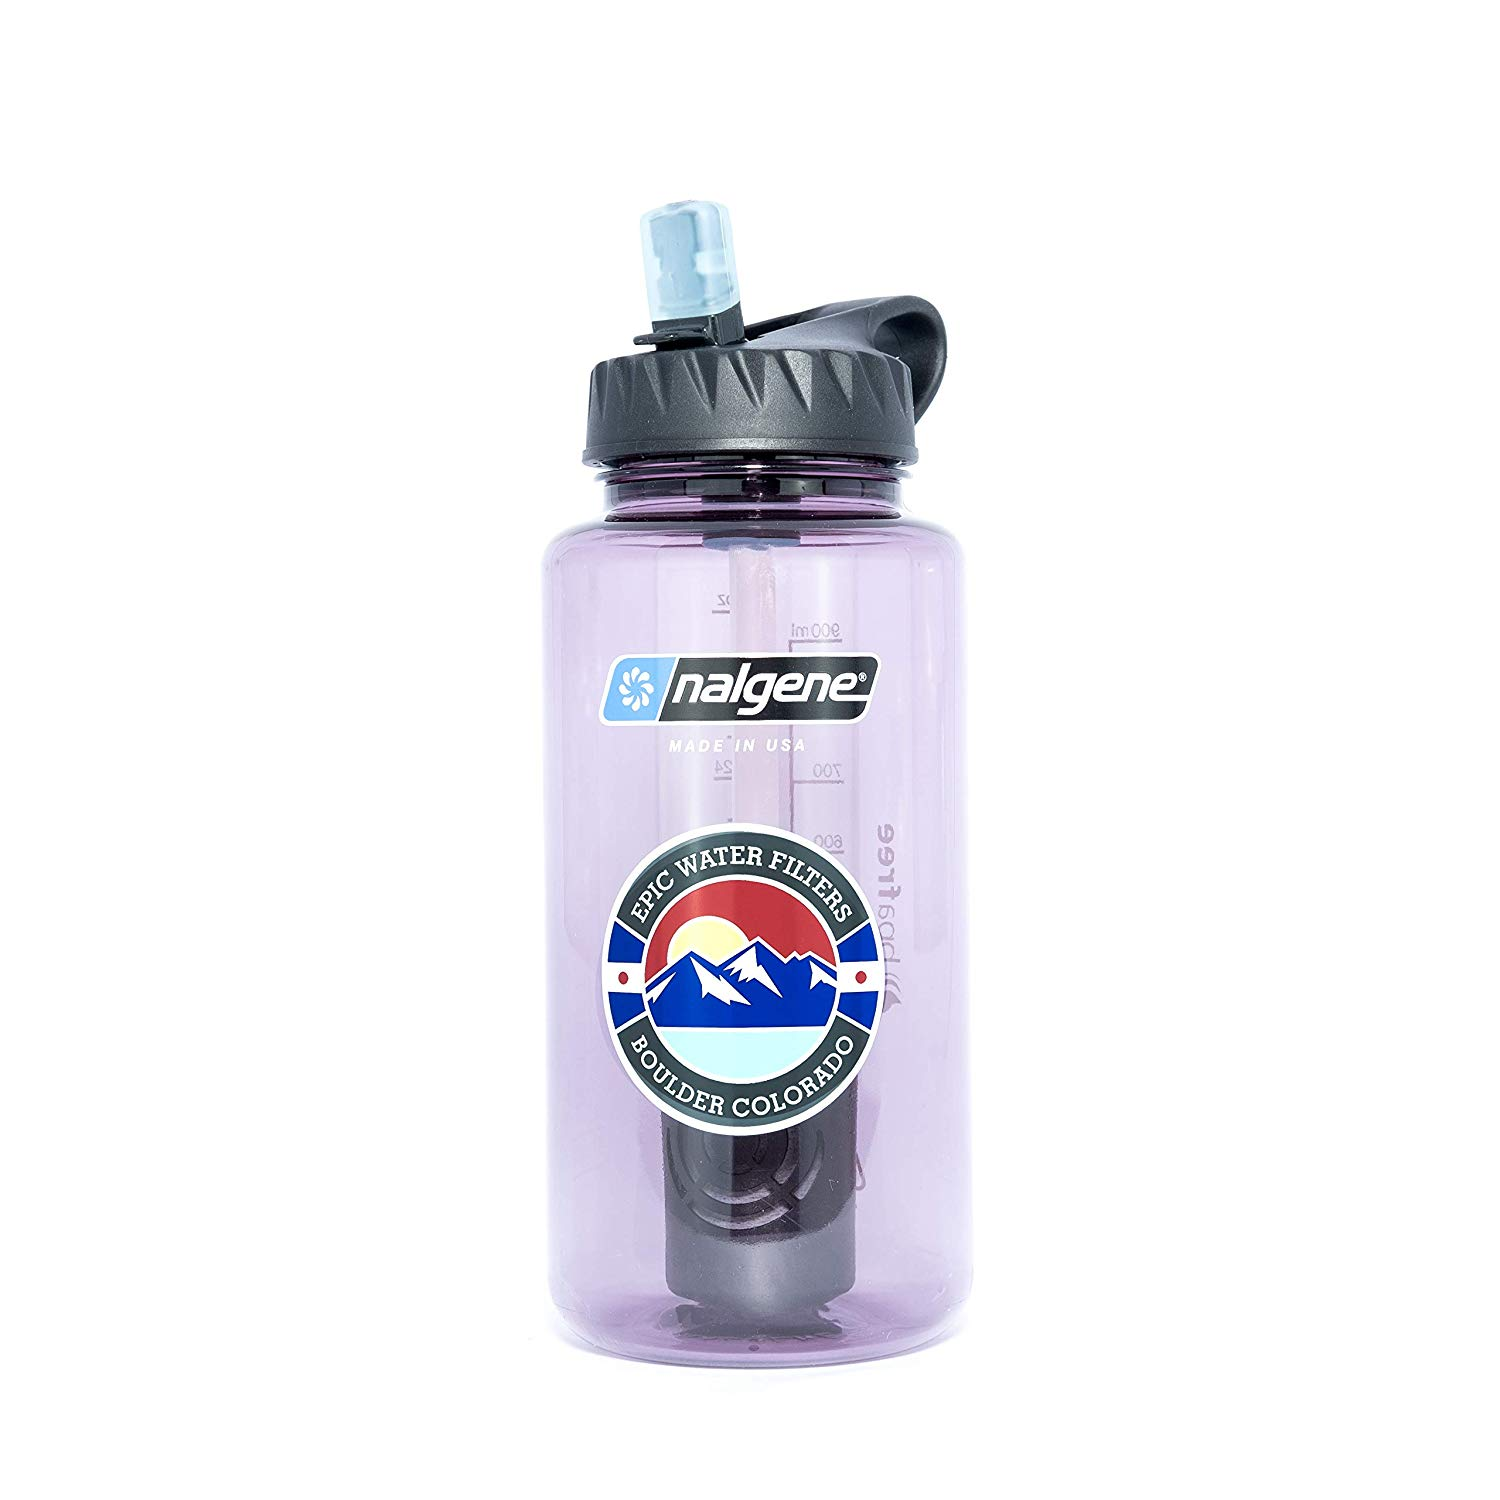 Epic Nalgene OG | Water Filtration Bottle - Water bottle with Filter